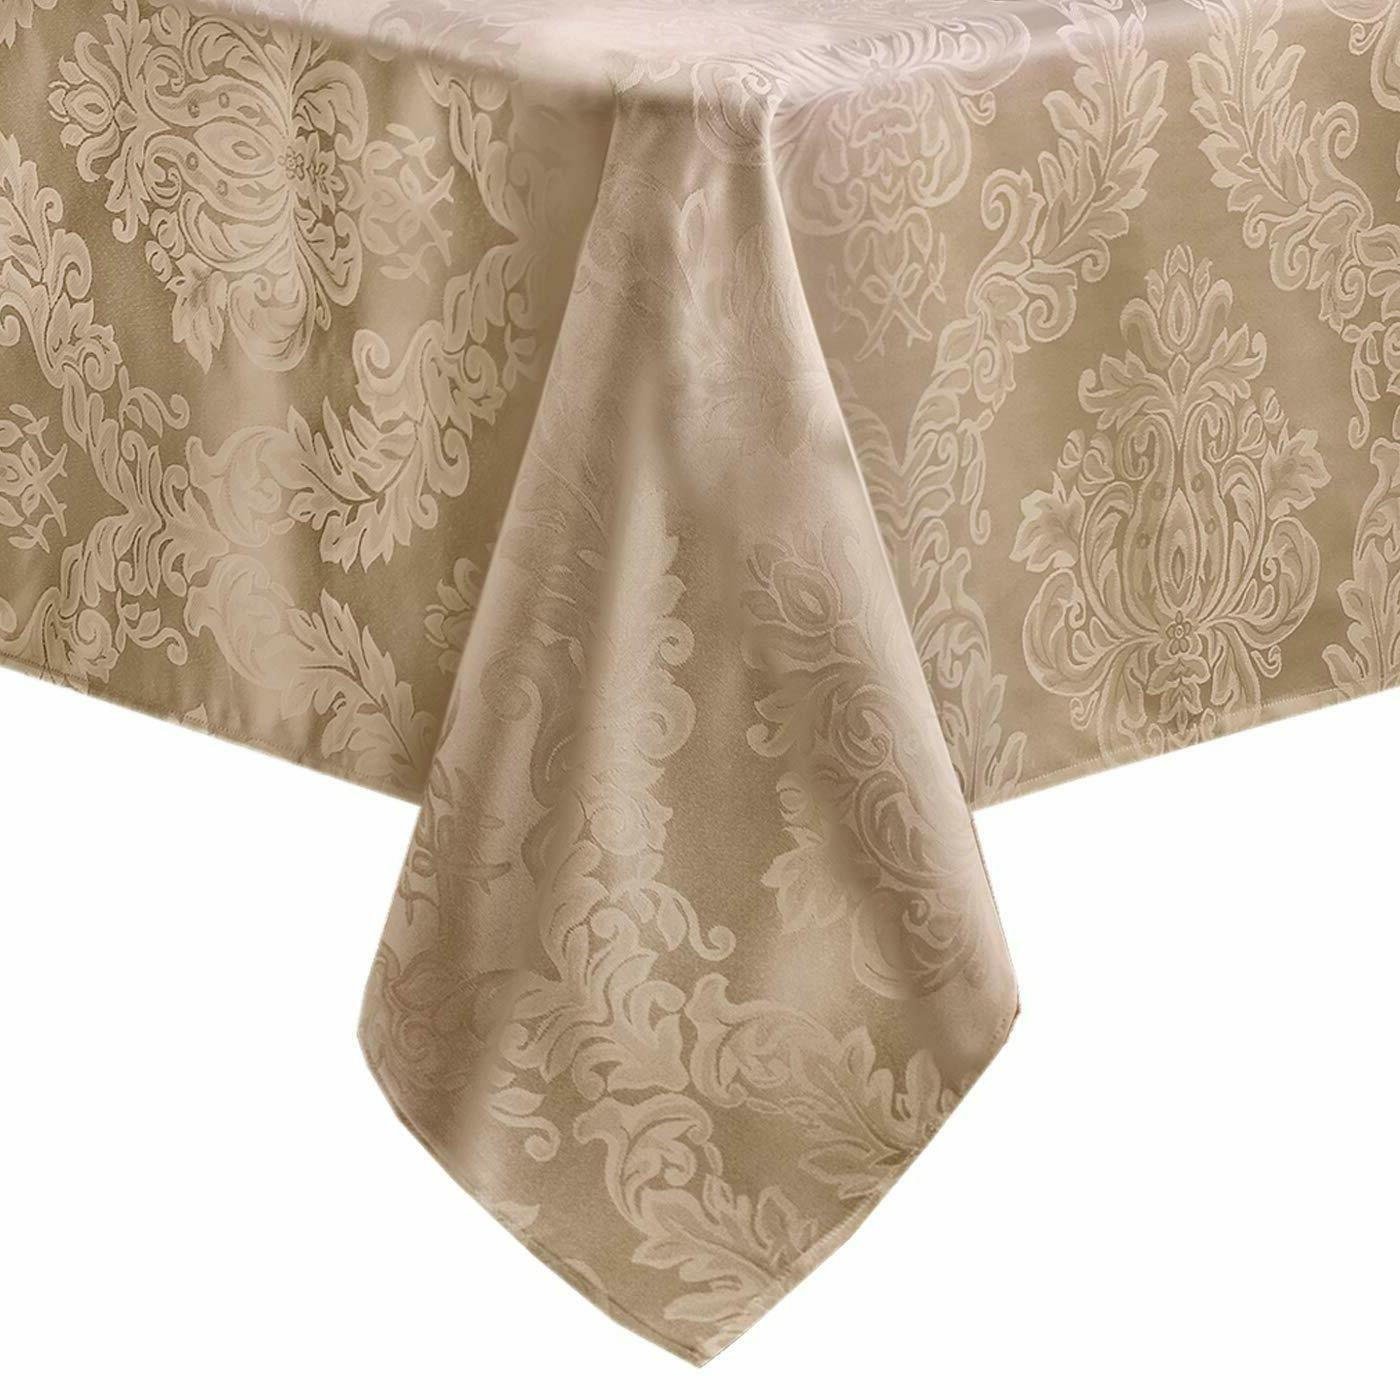 Fabric Damask Tablecloth Dining 52 Square